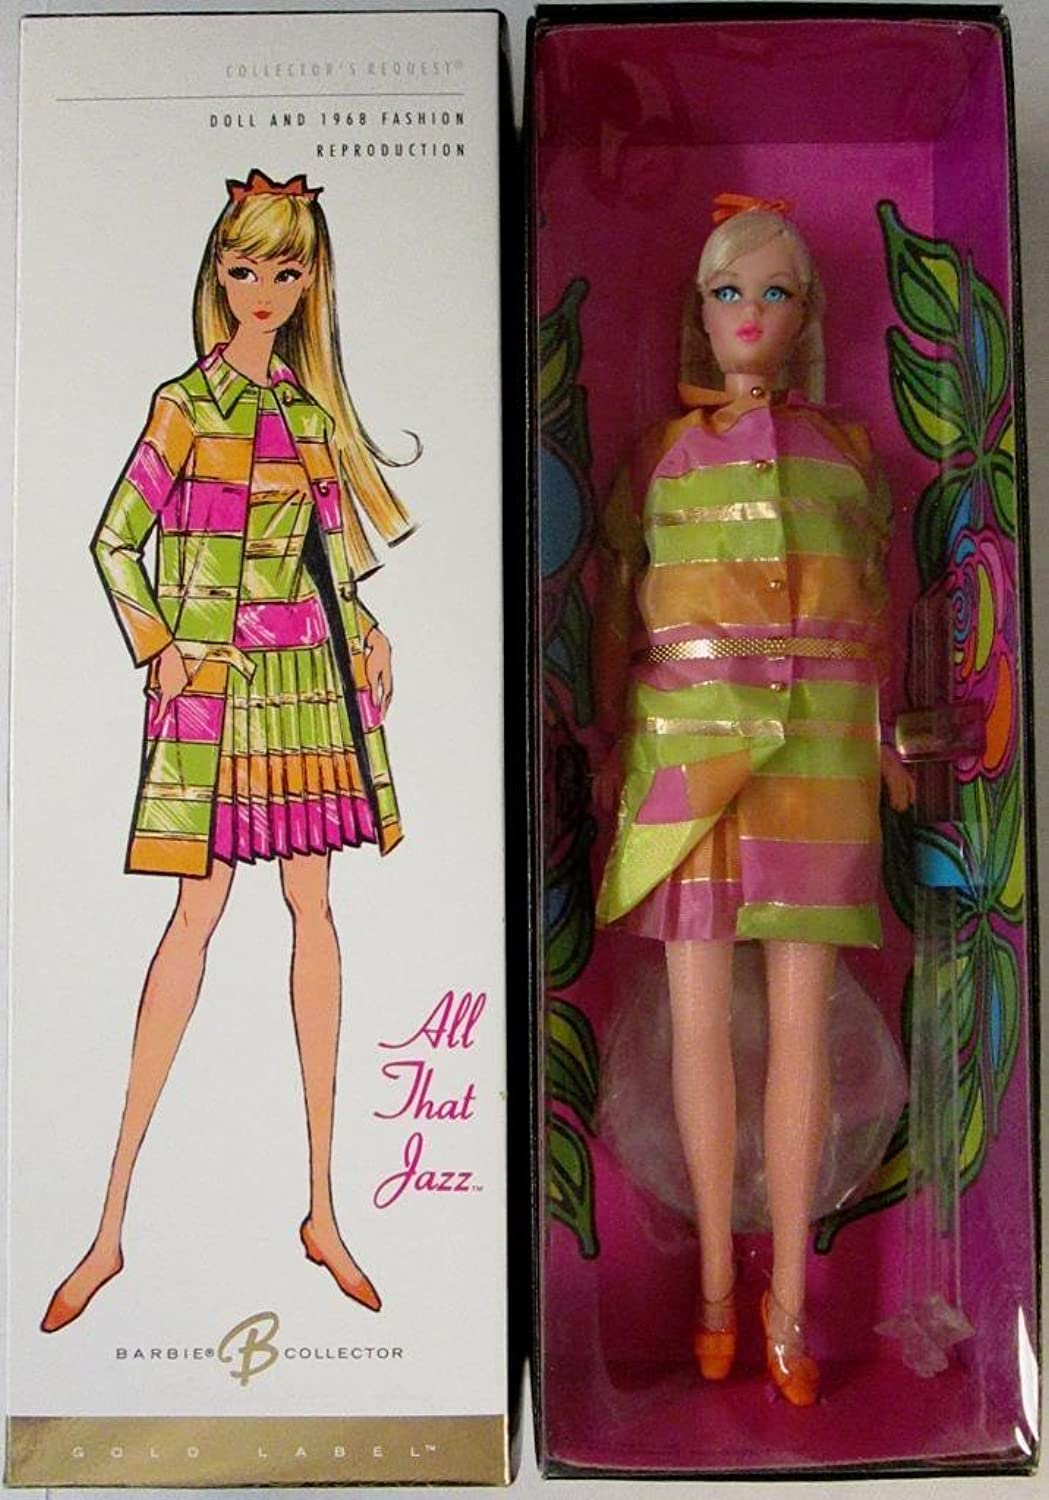 Barbie 2005 - Collector Request - Collector Edition - All That Jazz - Limited Edition - Gold Label - COA - OVP